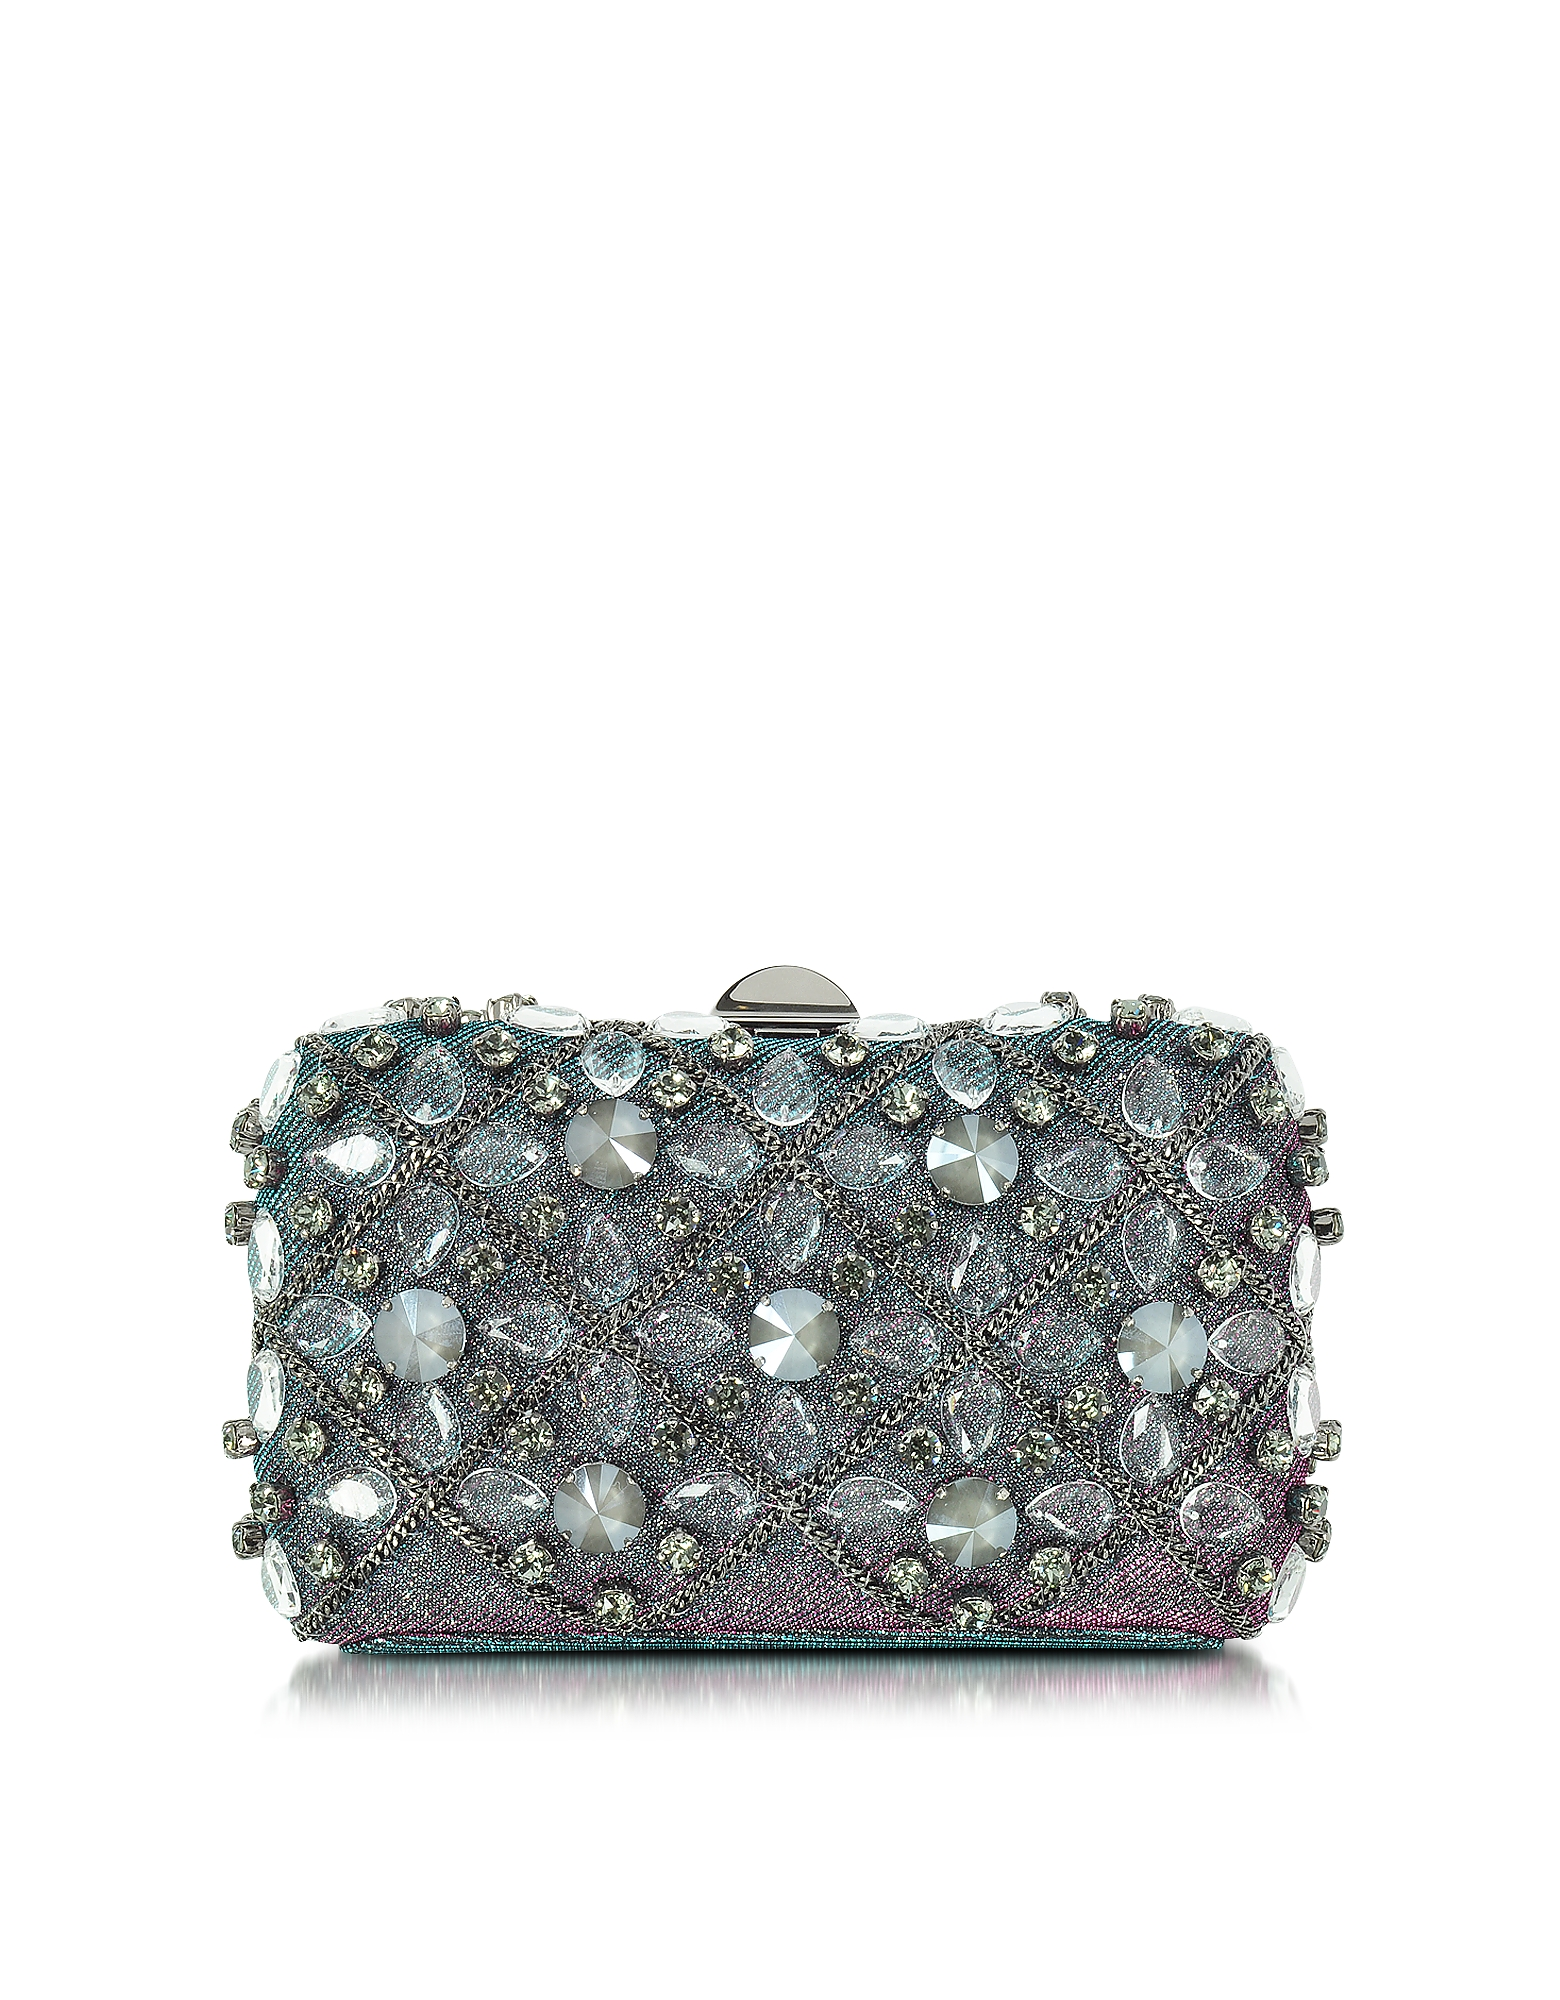 Rodo Handbags, Iridescent Lurex Tresor Clutch w/Crystals and Chains